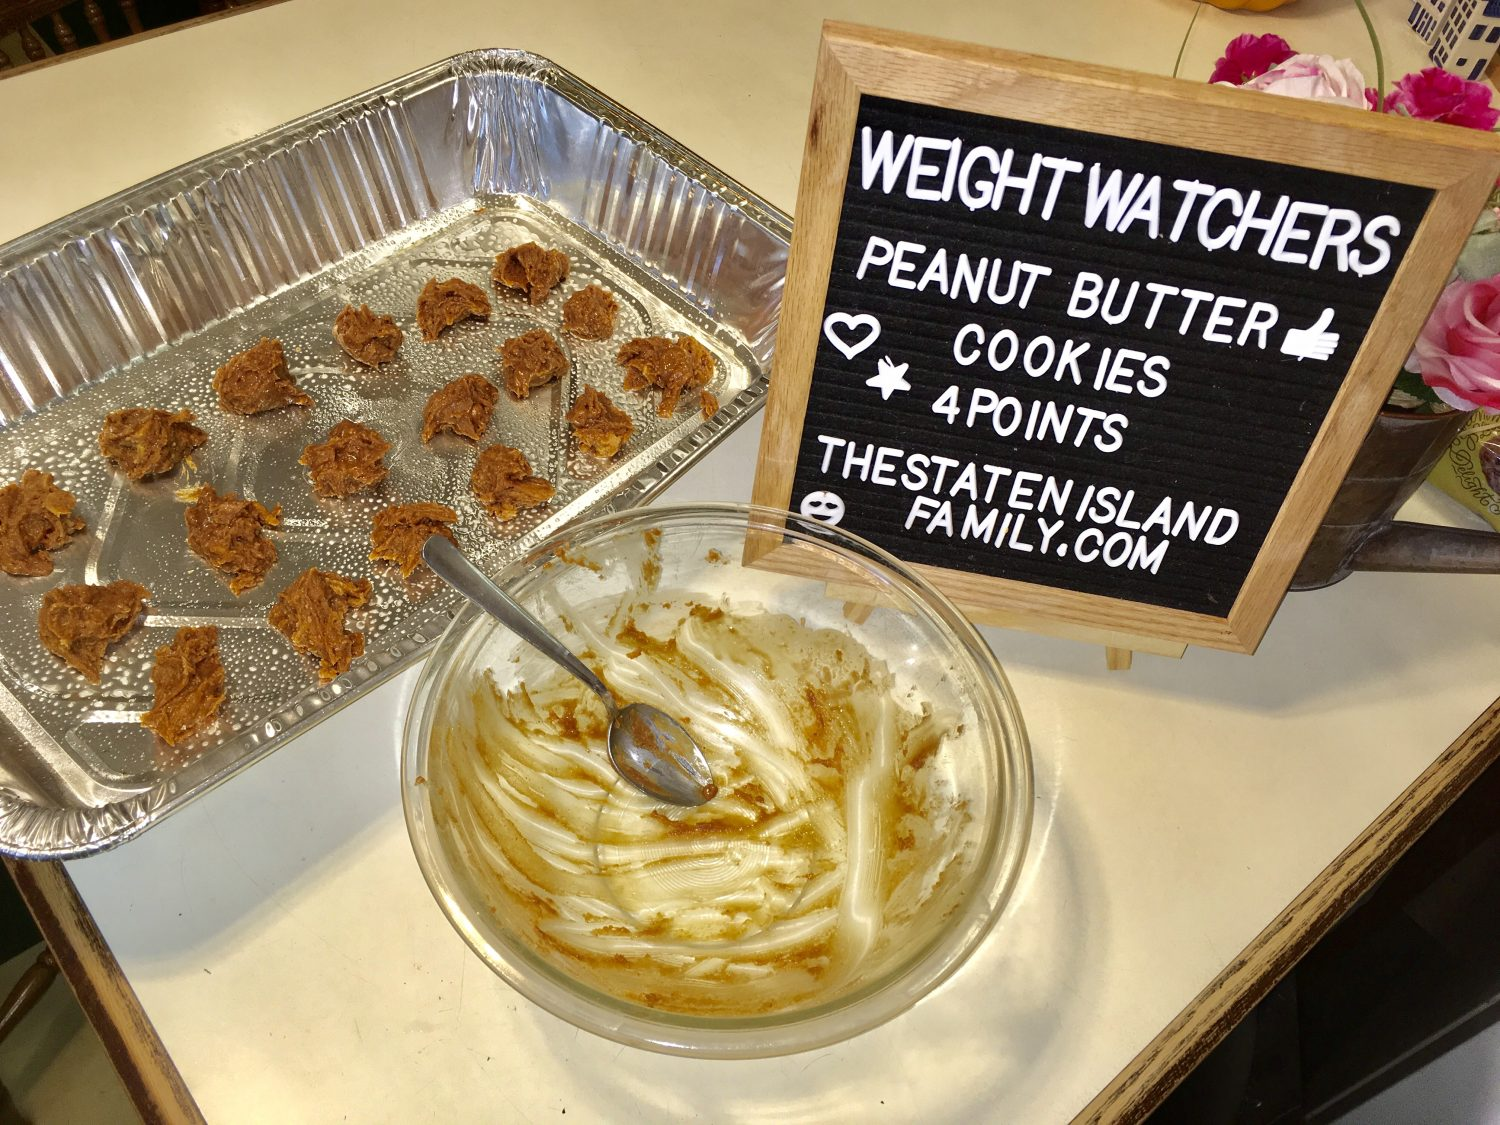 Peanut Butter Weight Watchers Cookies are a great treat for only 4 SmartPoints on the WW FreeStyle Plan. These are easy peanut butter cookies that everyone in your home will love to have as a treat.